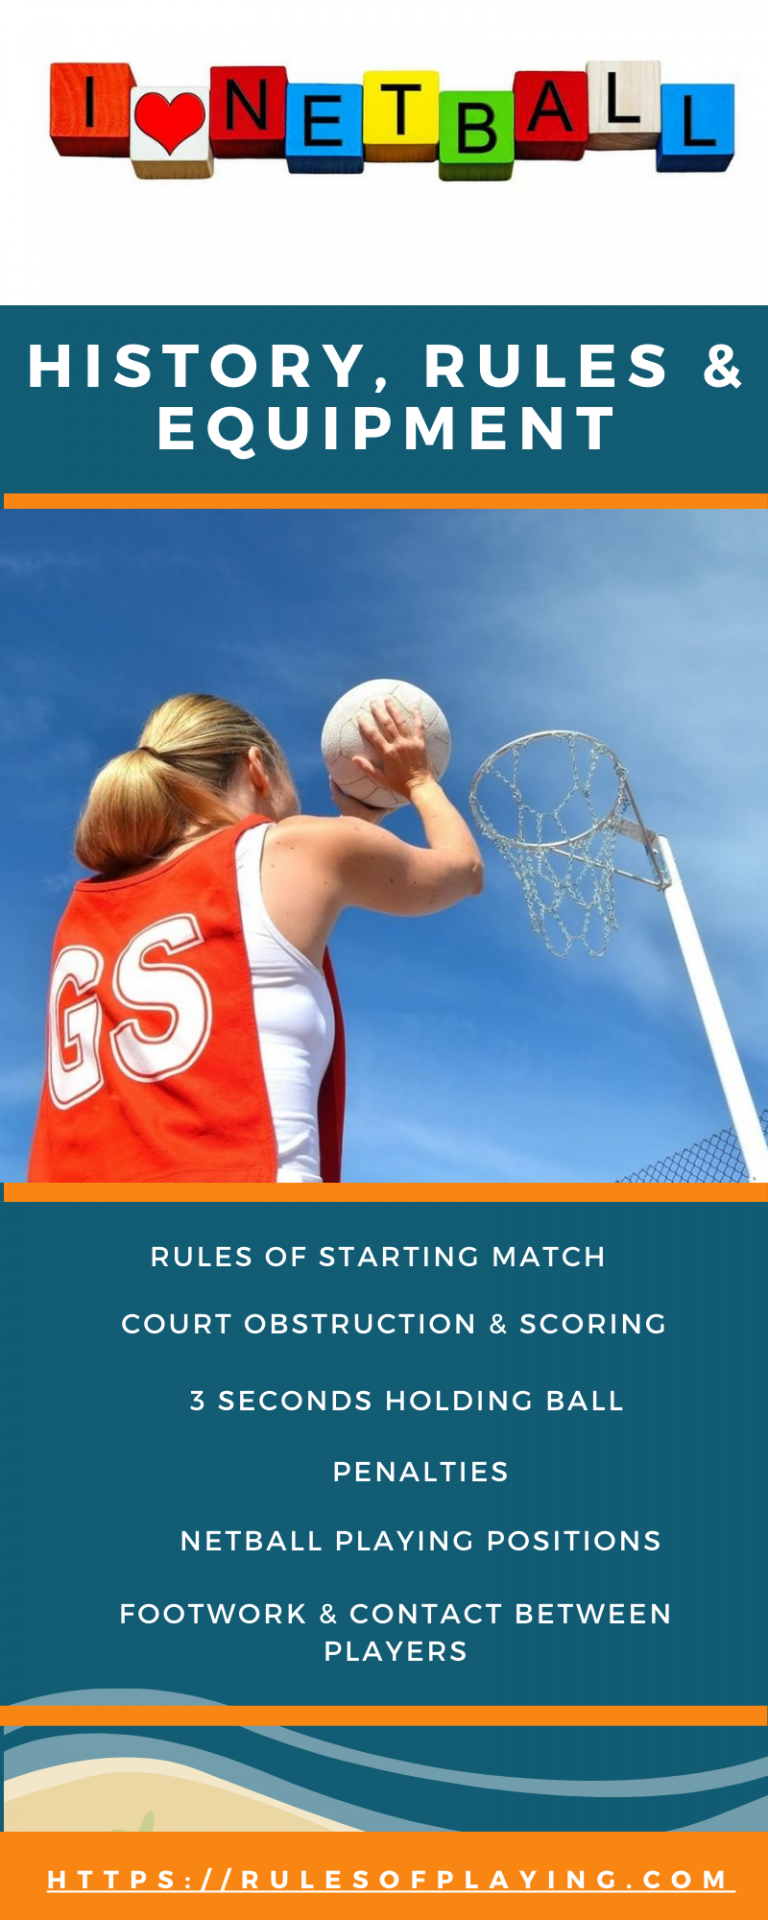 Netball Rules | Netball Positions, Court, Skills & Players Guide 2021